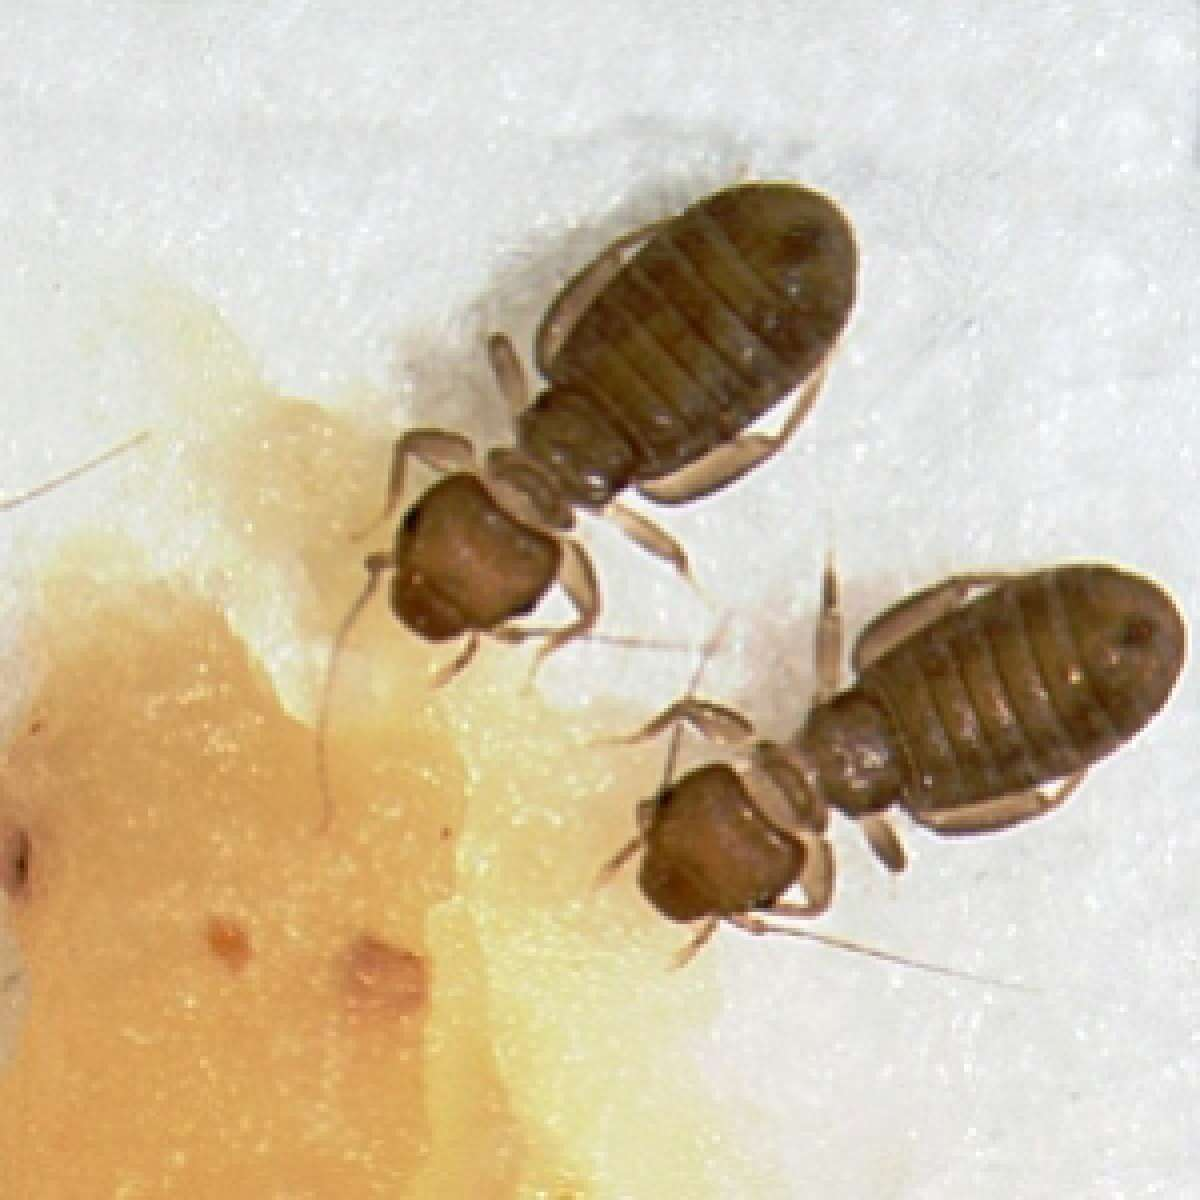 Control Of Booklice In Homes